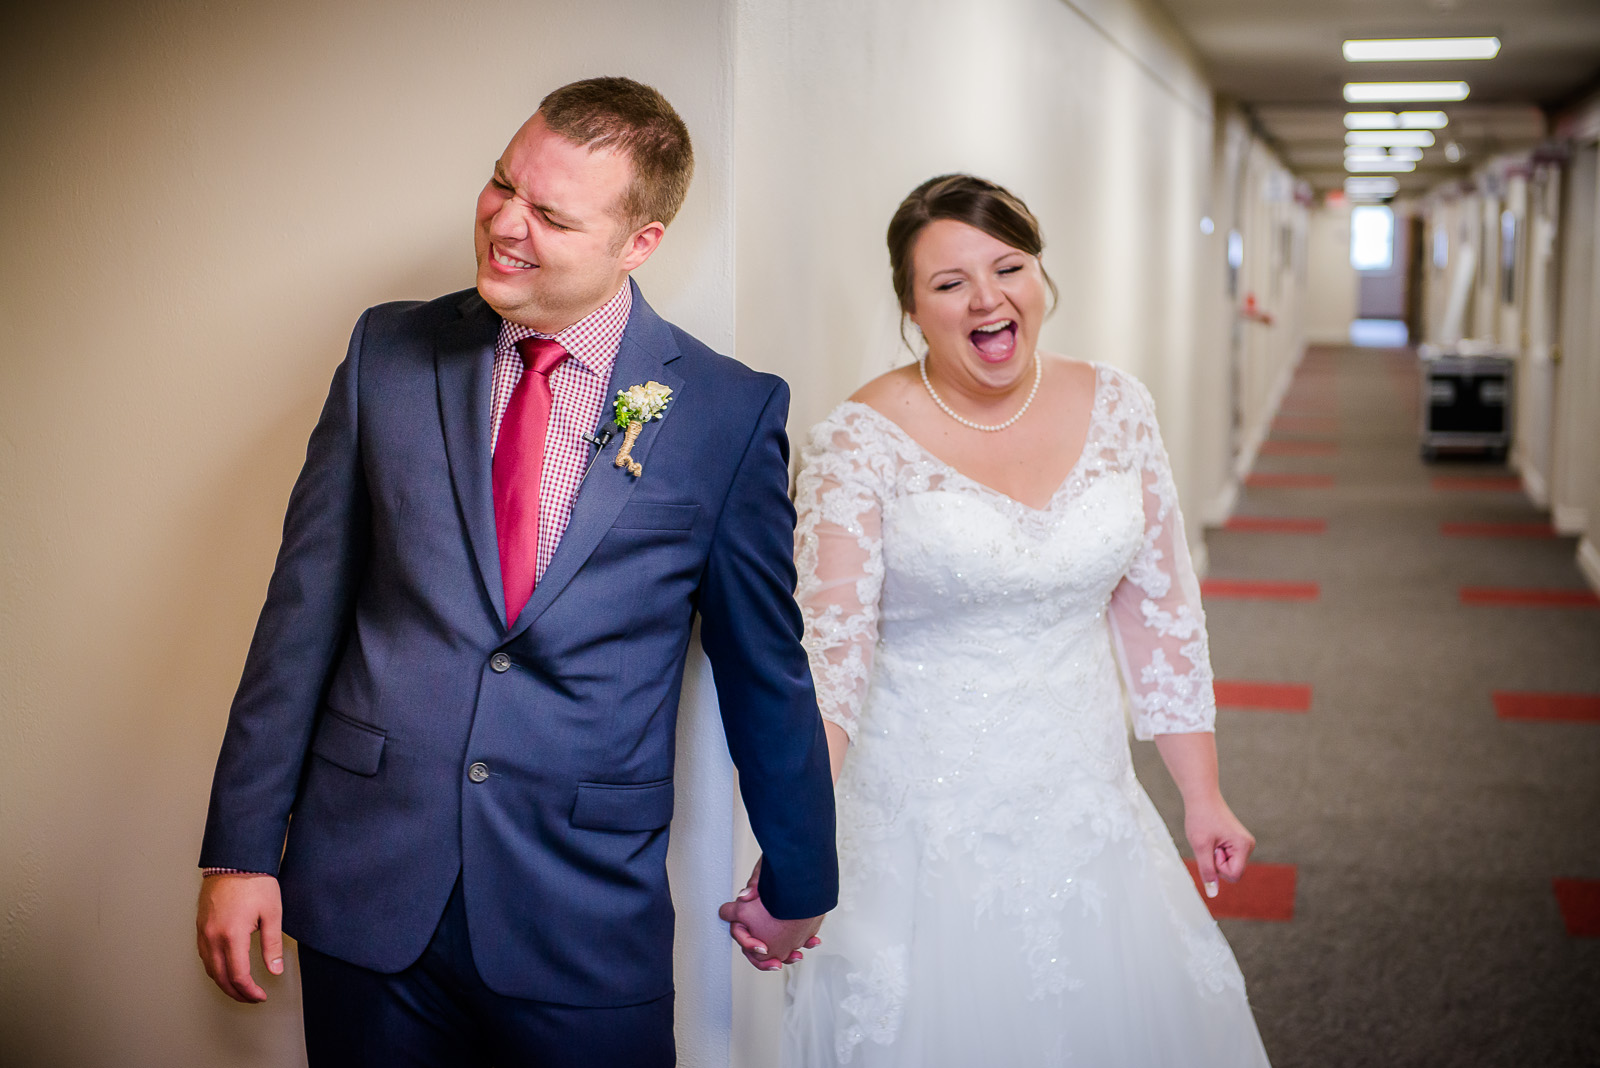 Eric_and_Christy_Photography_Blog_2018_Wed_moments-5